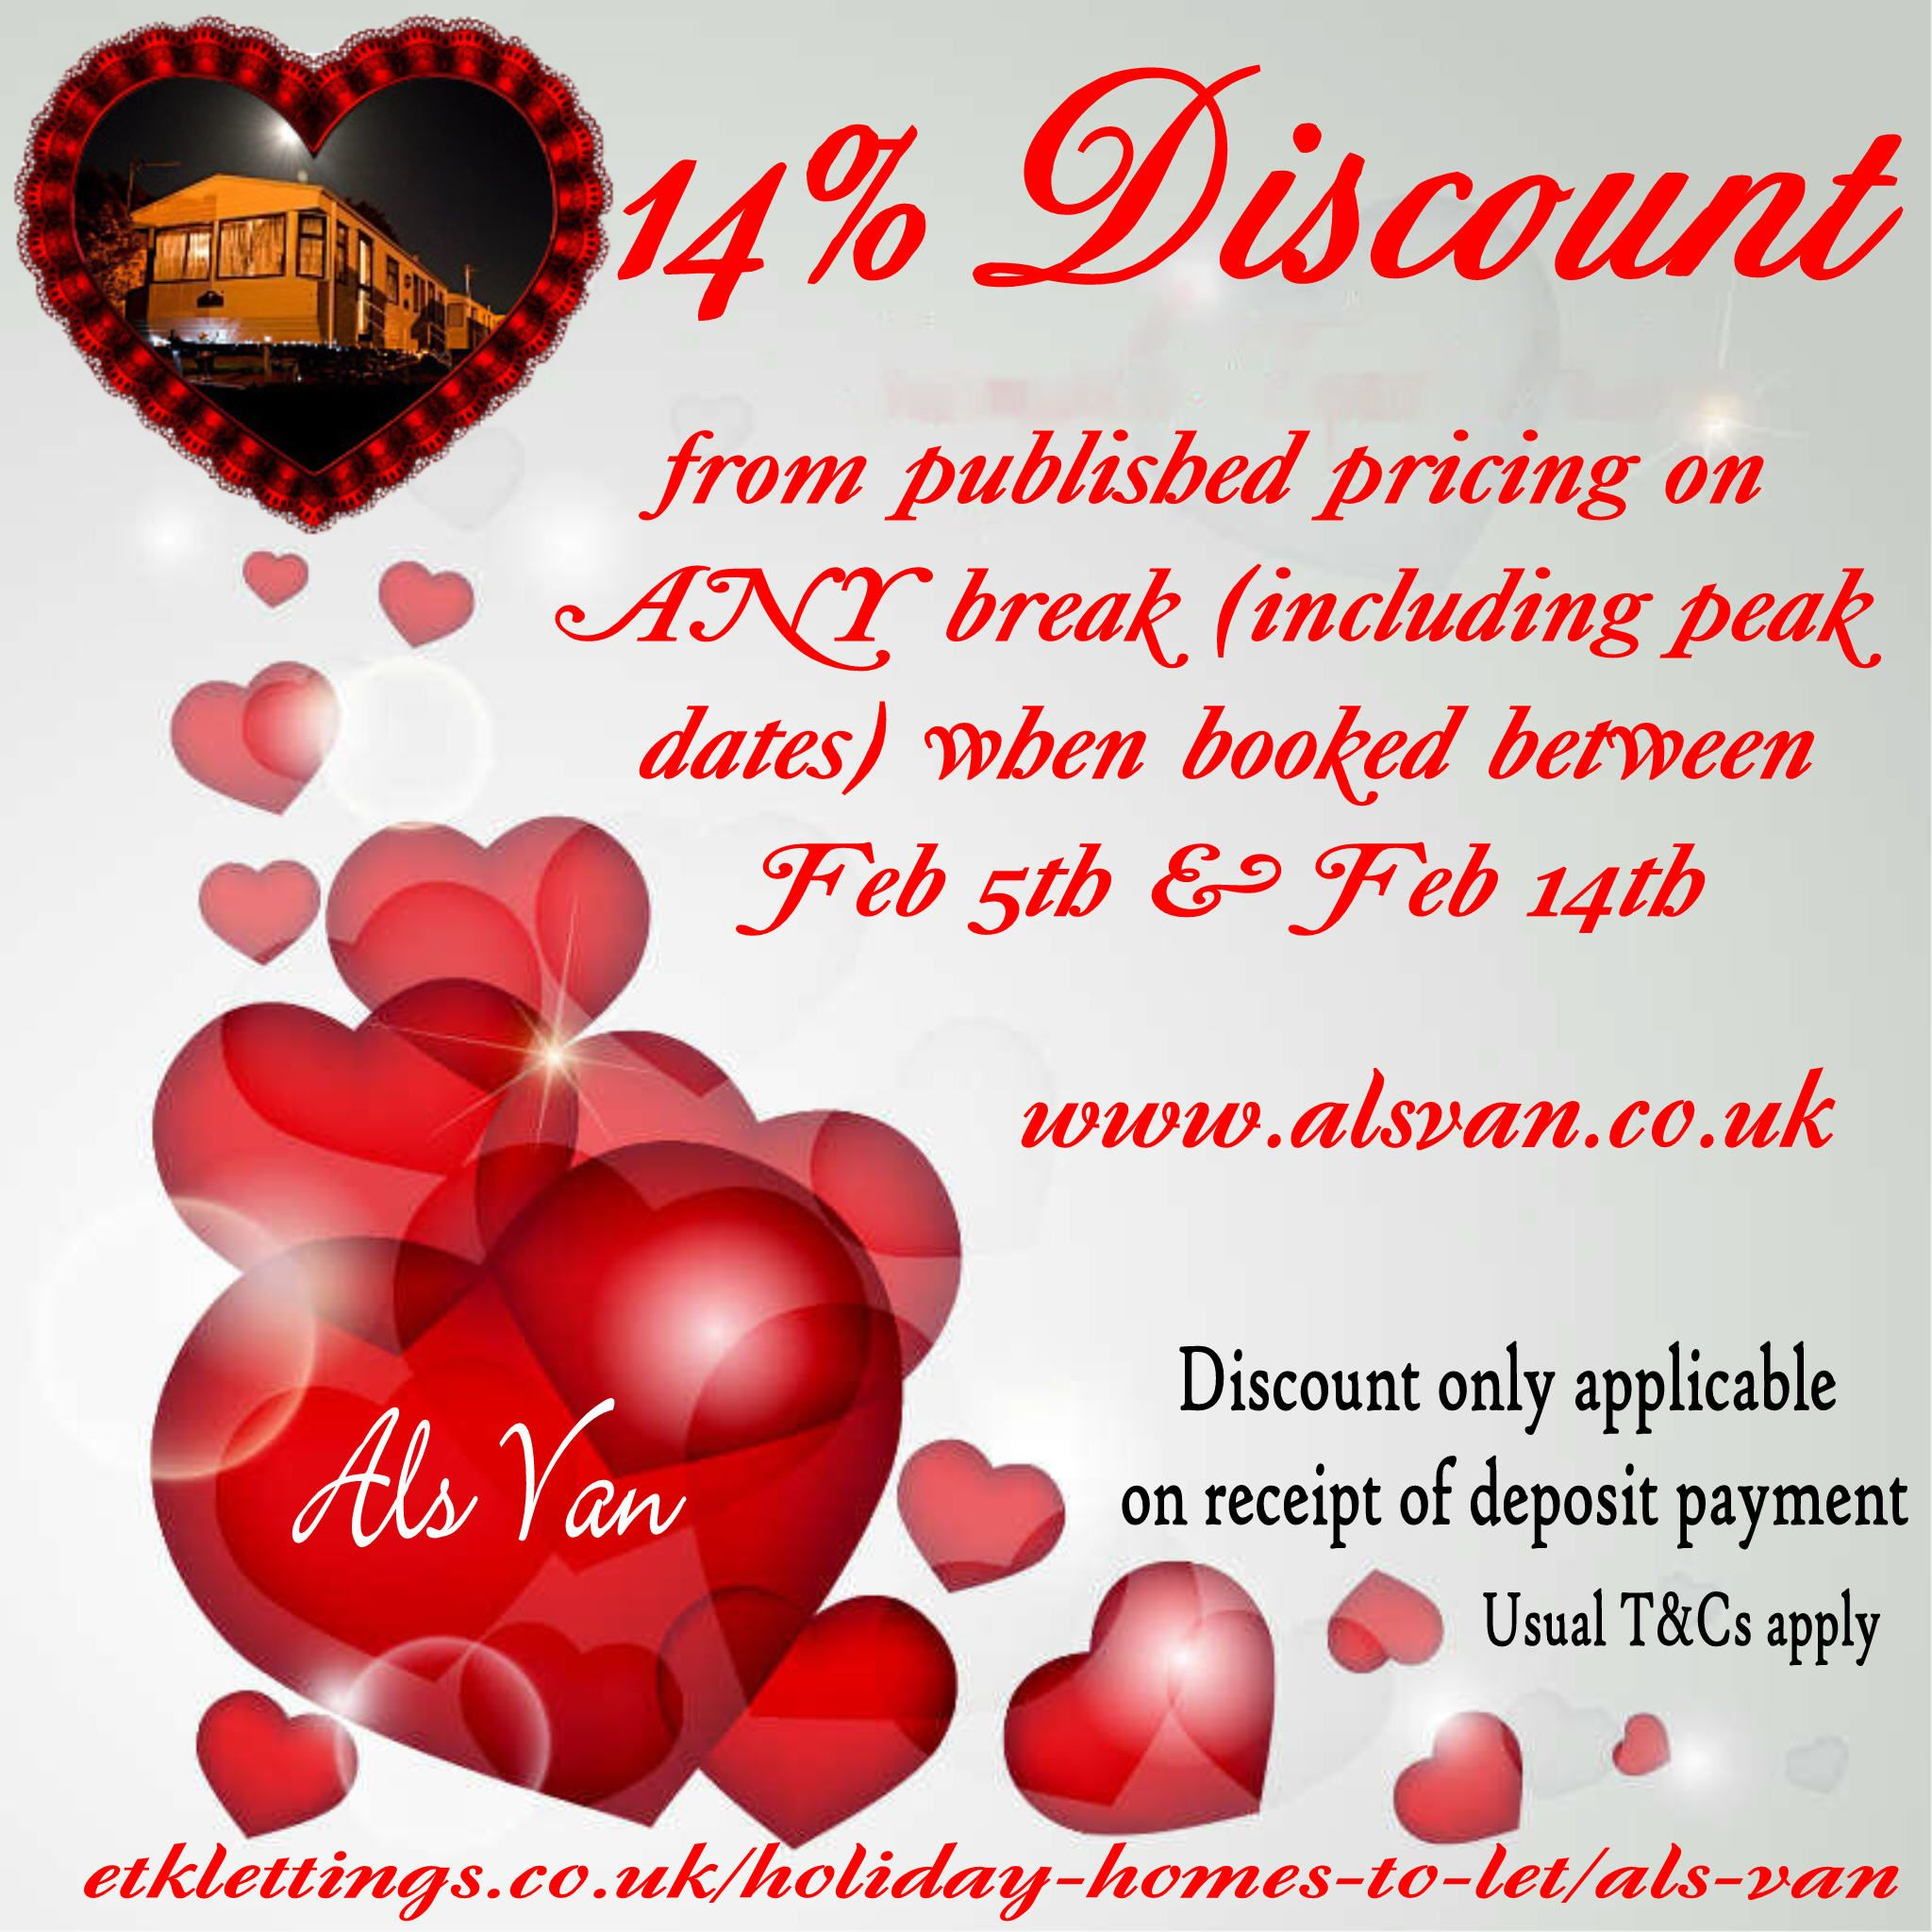 Grab a romantic 14% discount from any break booked between Feb 5th & Feb 14th (INCLUDING PEAK DATES!).   Fabulous Static Caravan Holiday offer from our very own Als Van, Park Resorts, Ashcroft Coast.  Don't delay... book today.